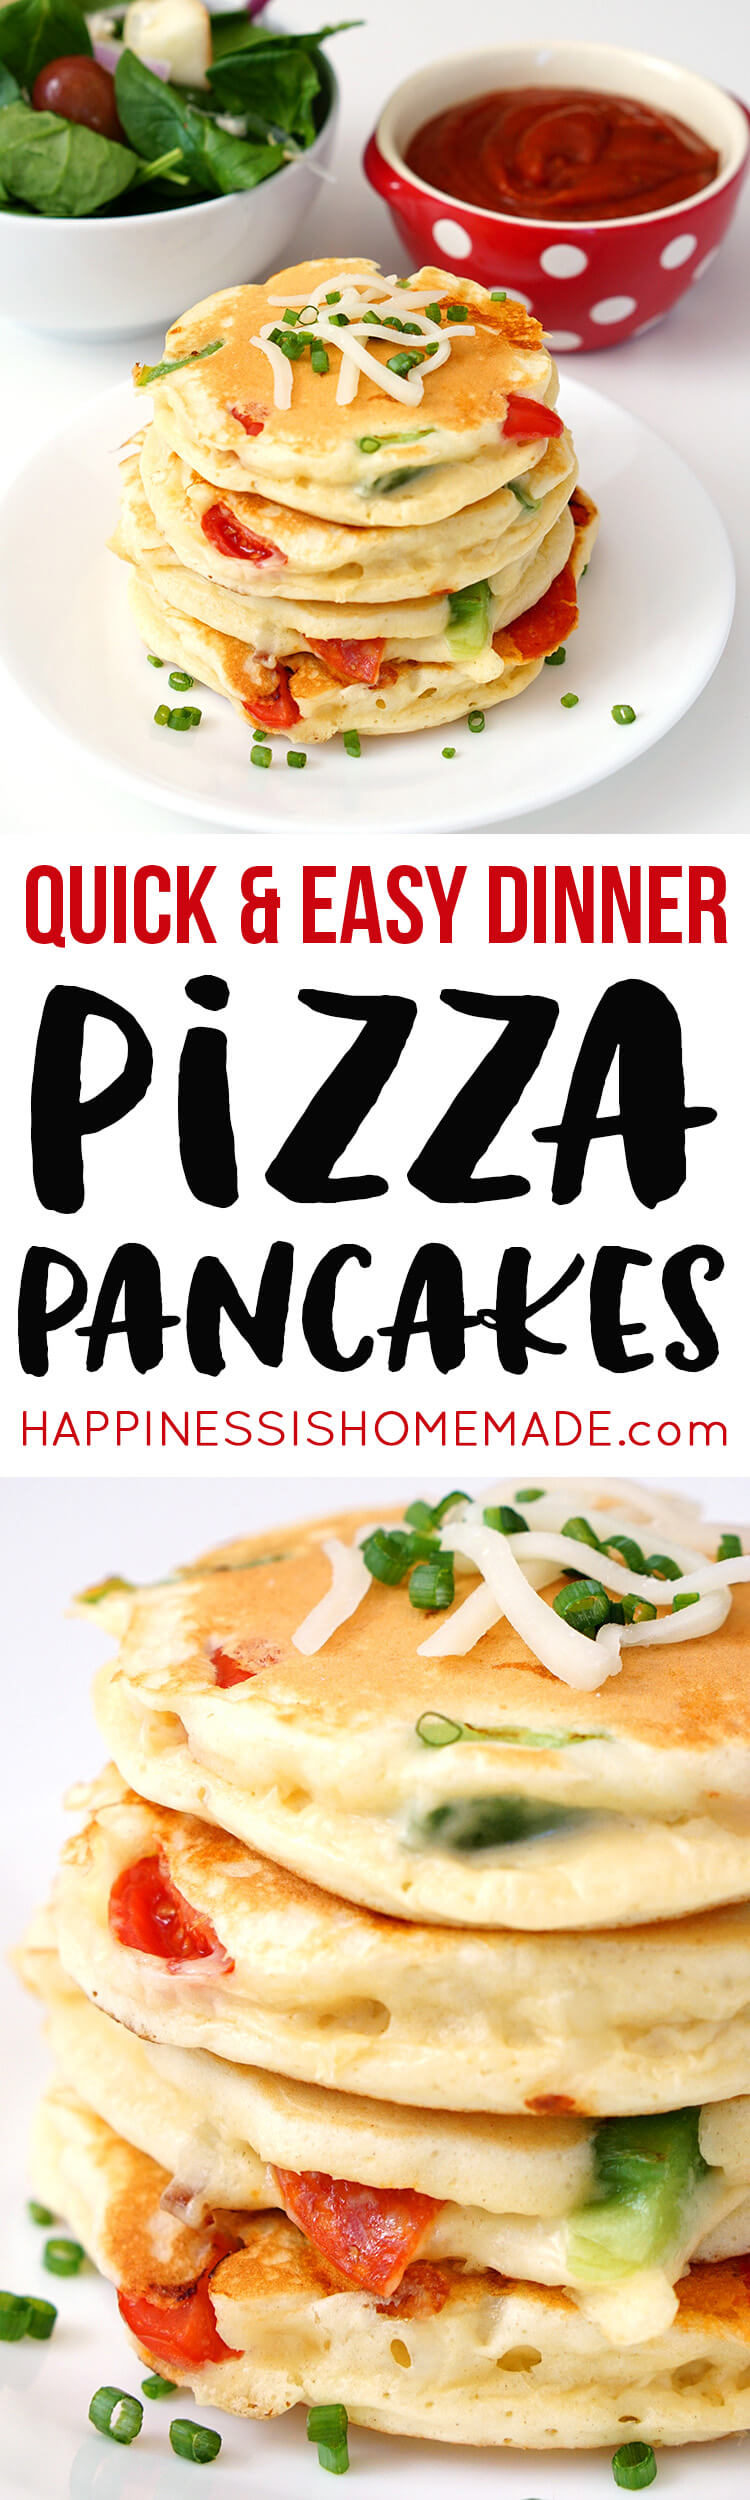 pizza-pancakes-quick-and-easy-dinner-recipe-idea